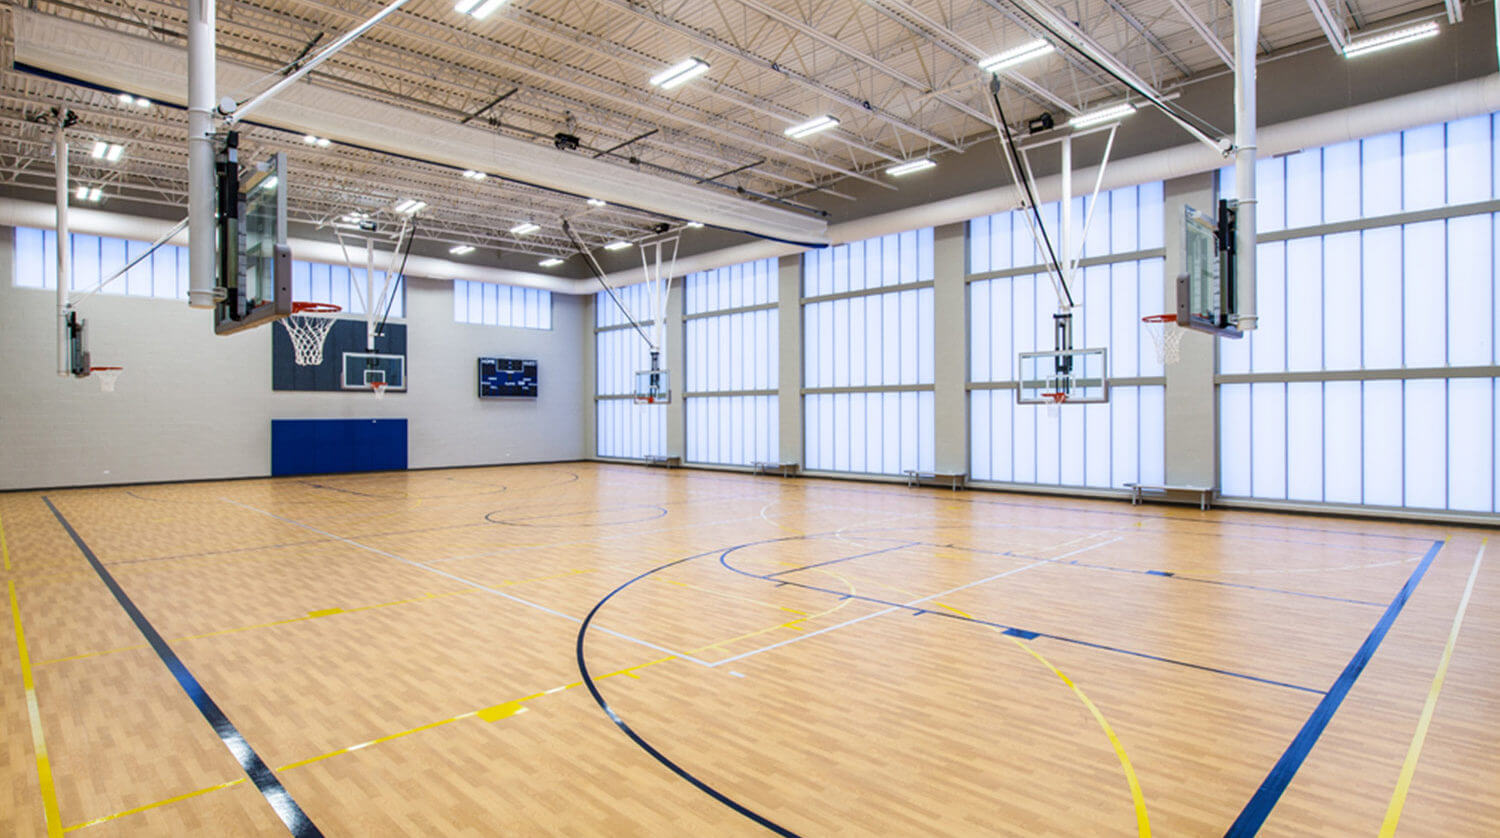 Mundelein Dunbar Recreation Center gym